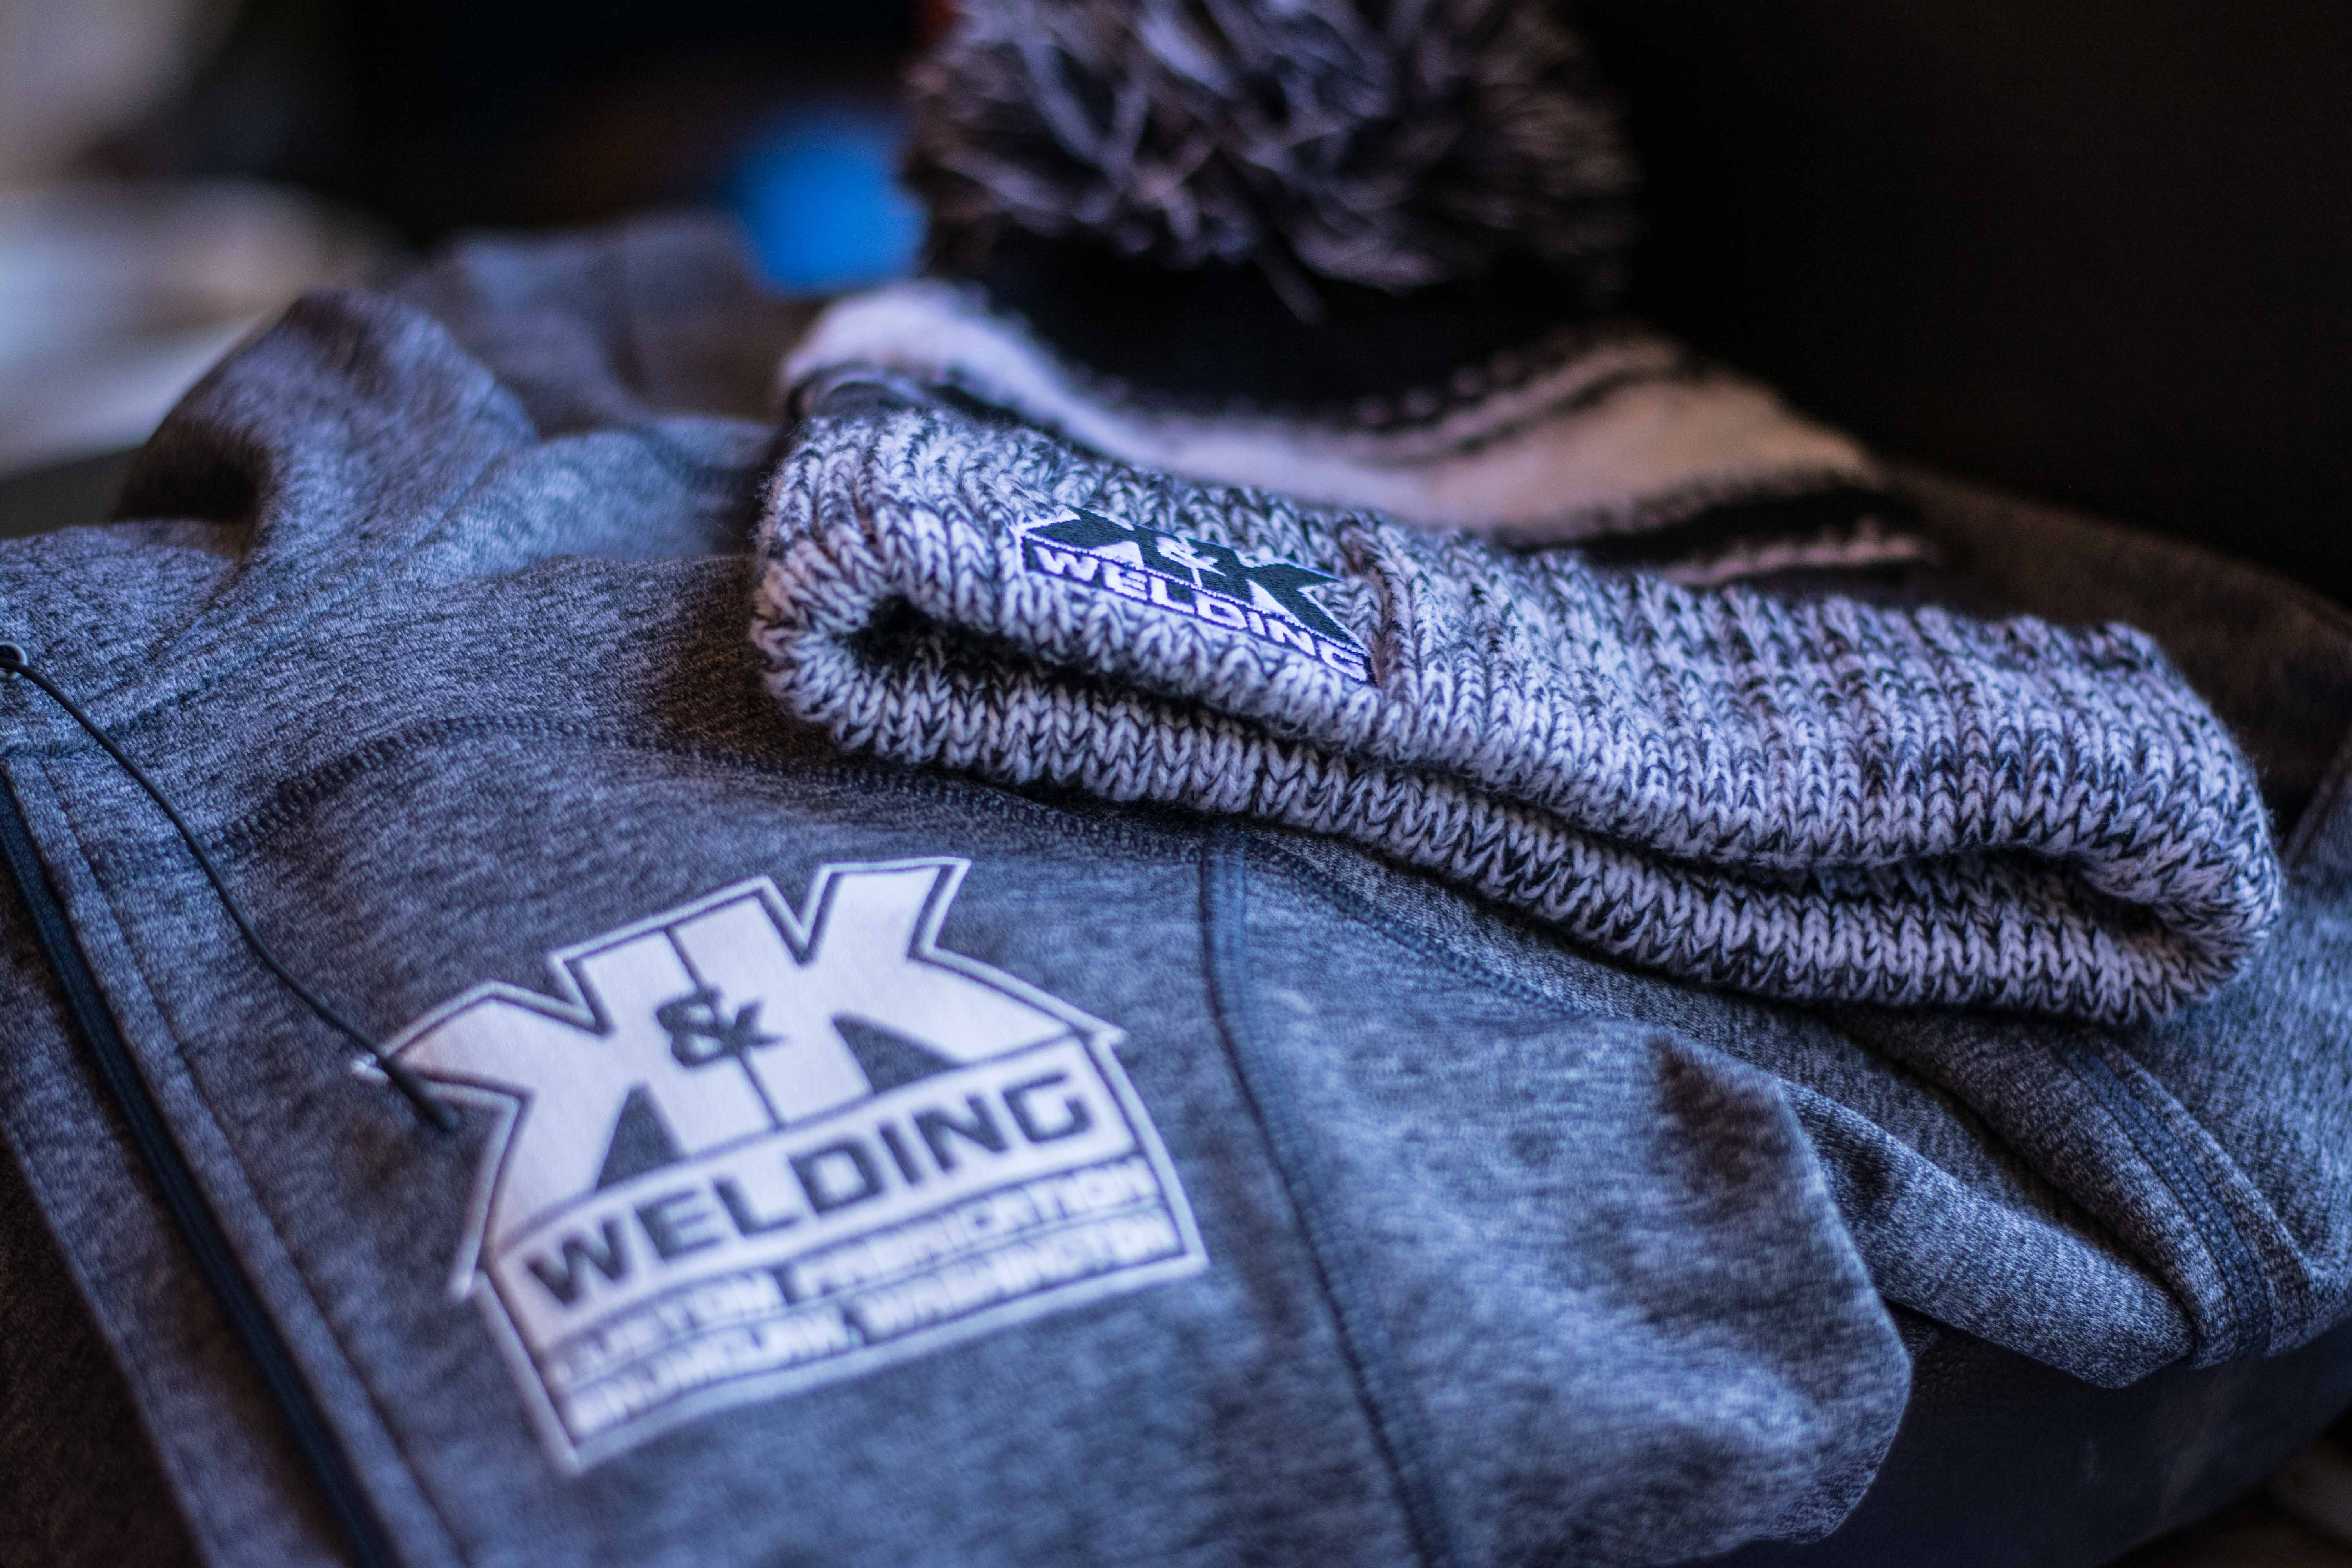 Featured College Hill Client K&K Welding  Custom Design Gear apparel and promotional products beanies welding